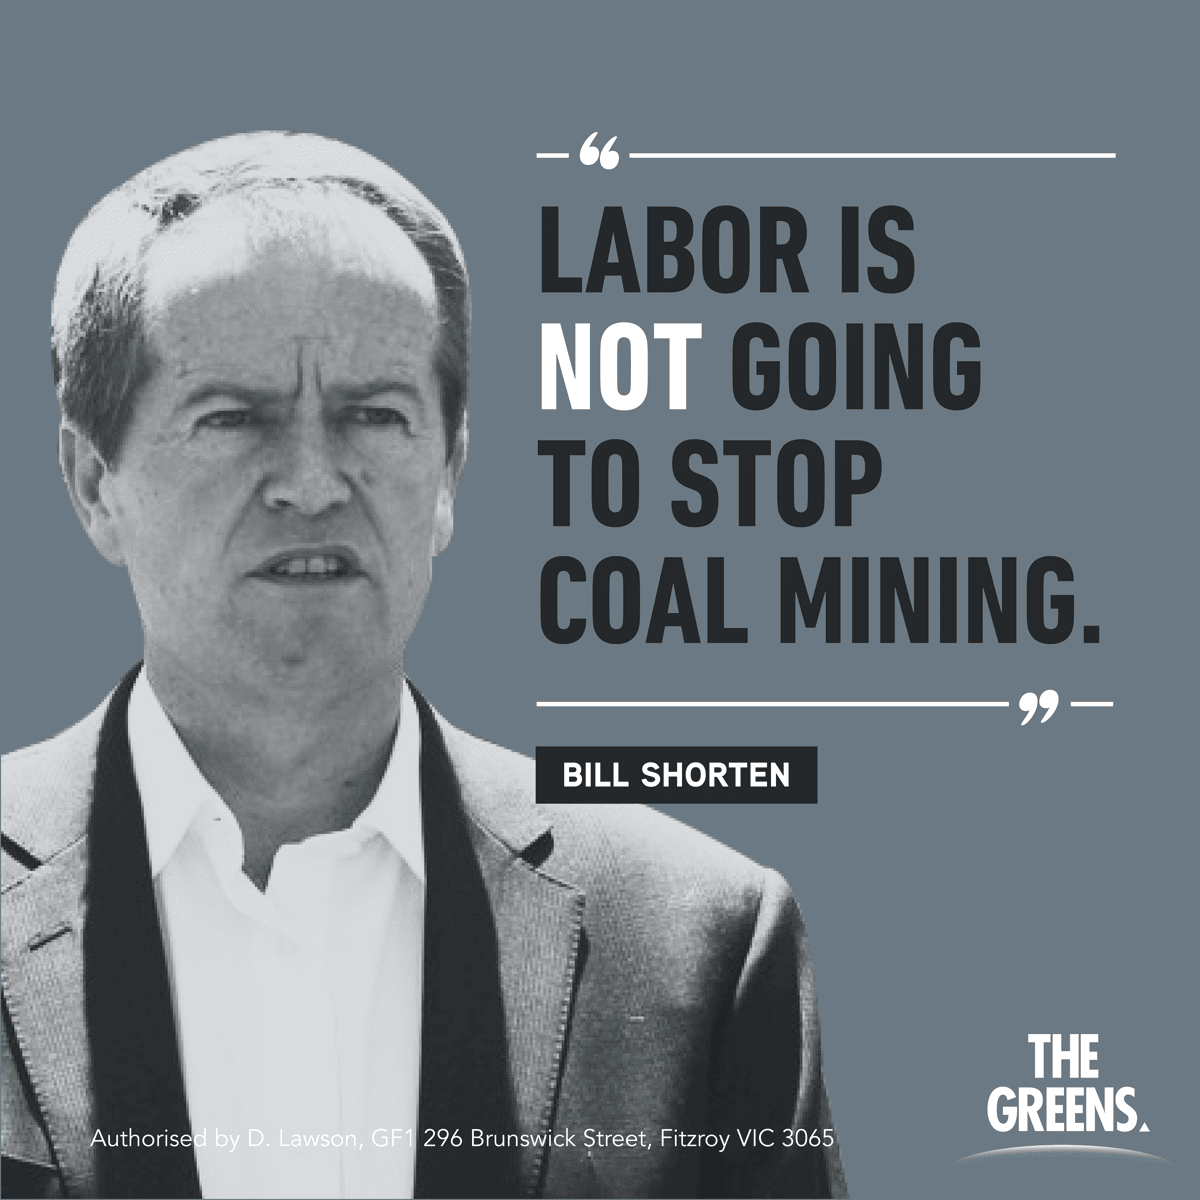 Shorten: Labor is not going to stop coal mining